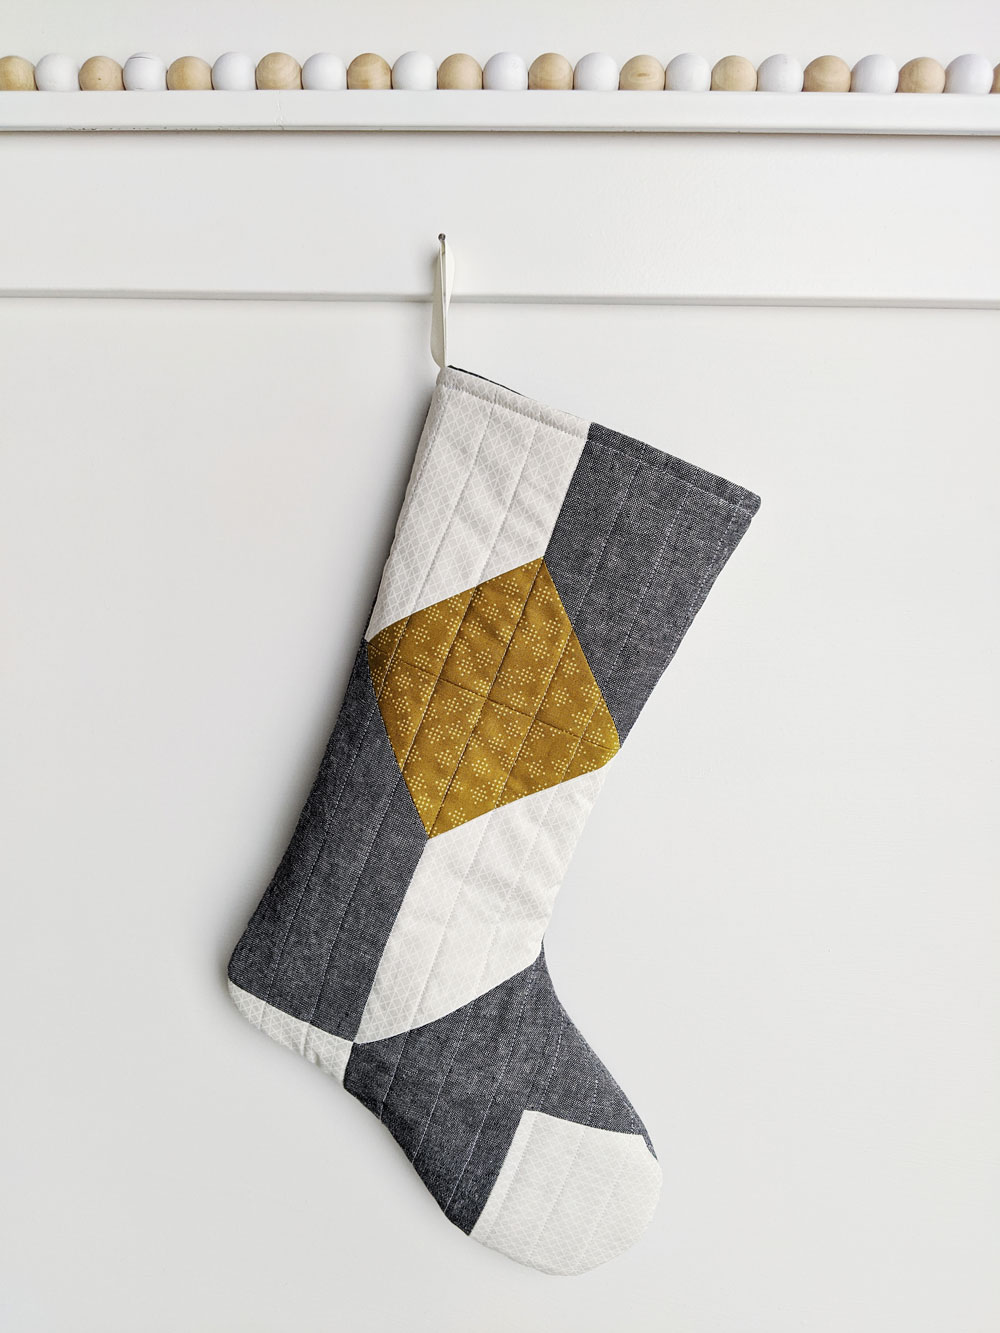 A free quilted Christmas stocking pattern right in time for the holidays! Sew a simple, modern stocking with this step by step tutorial. suzyquilts.com #DIYstocking #quilttutorial